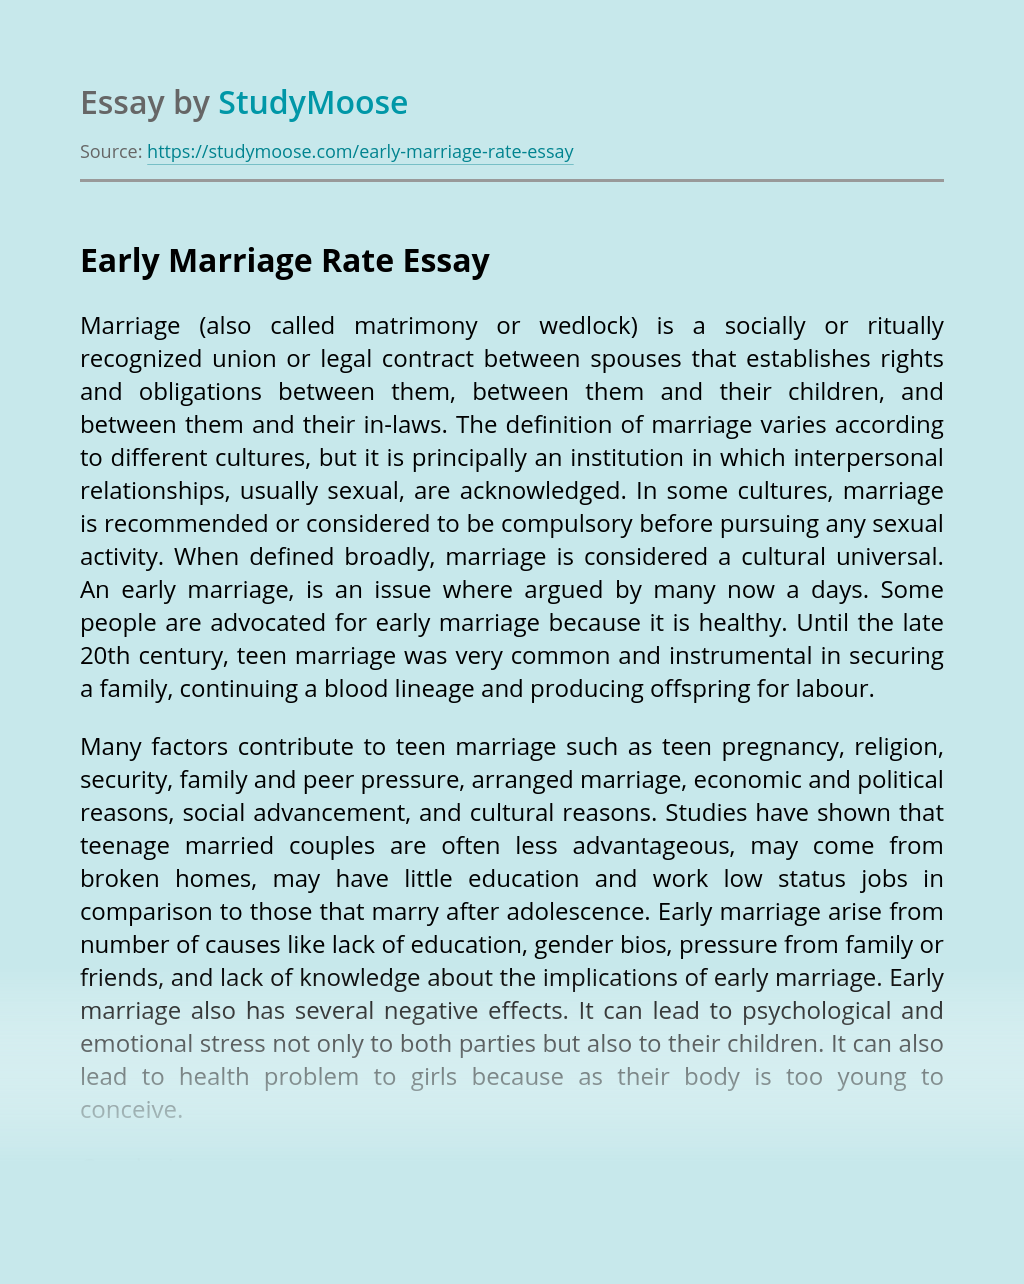 Early Marriage Rate